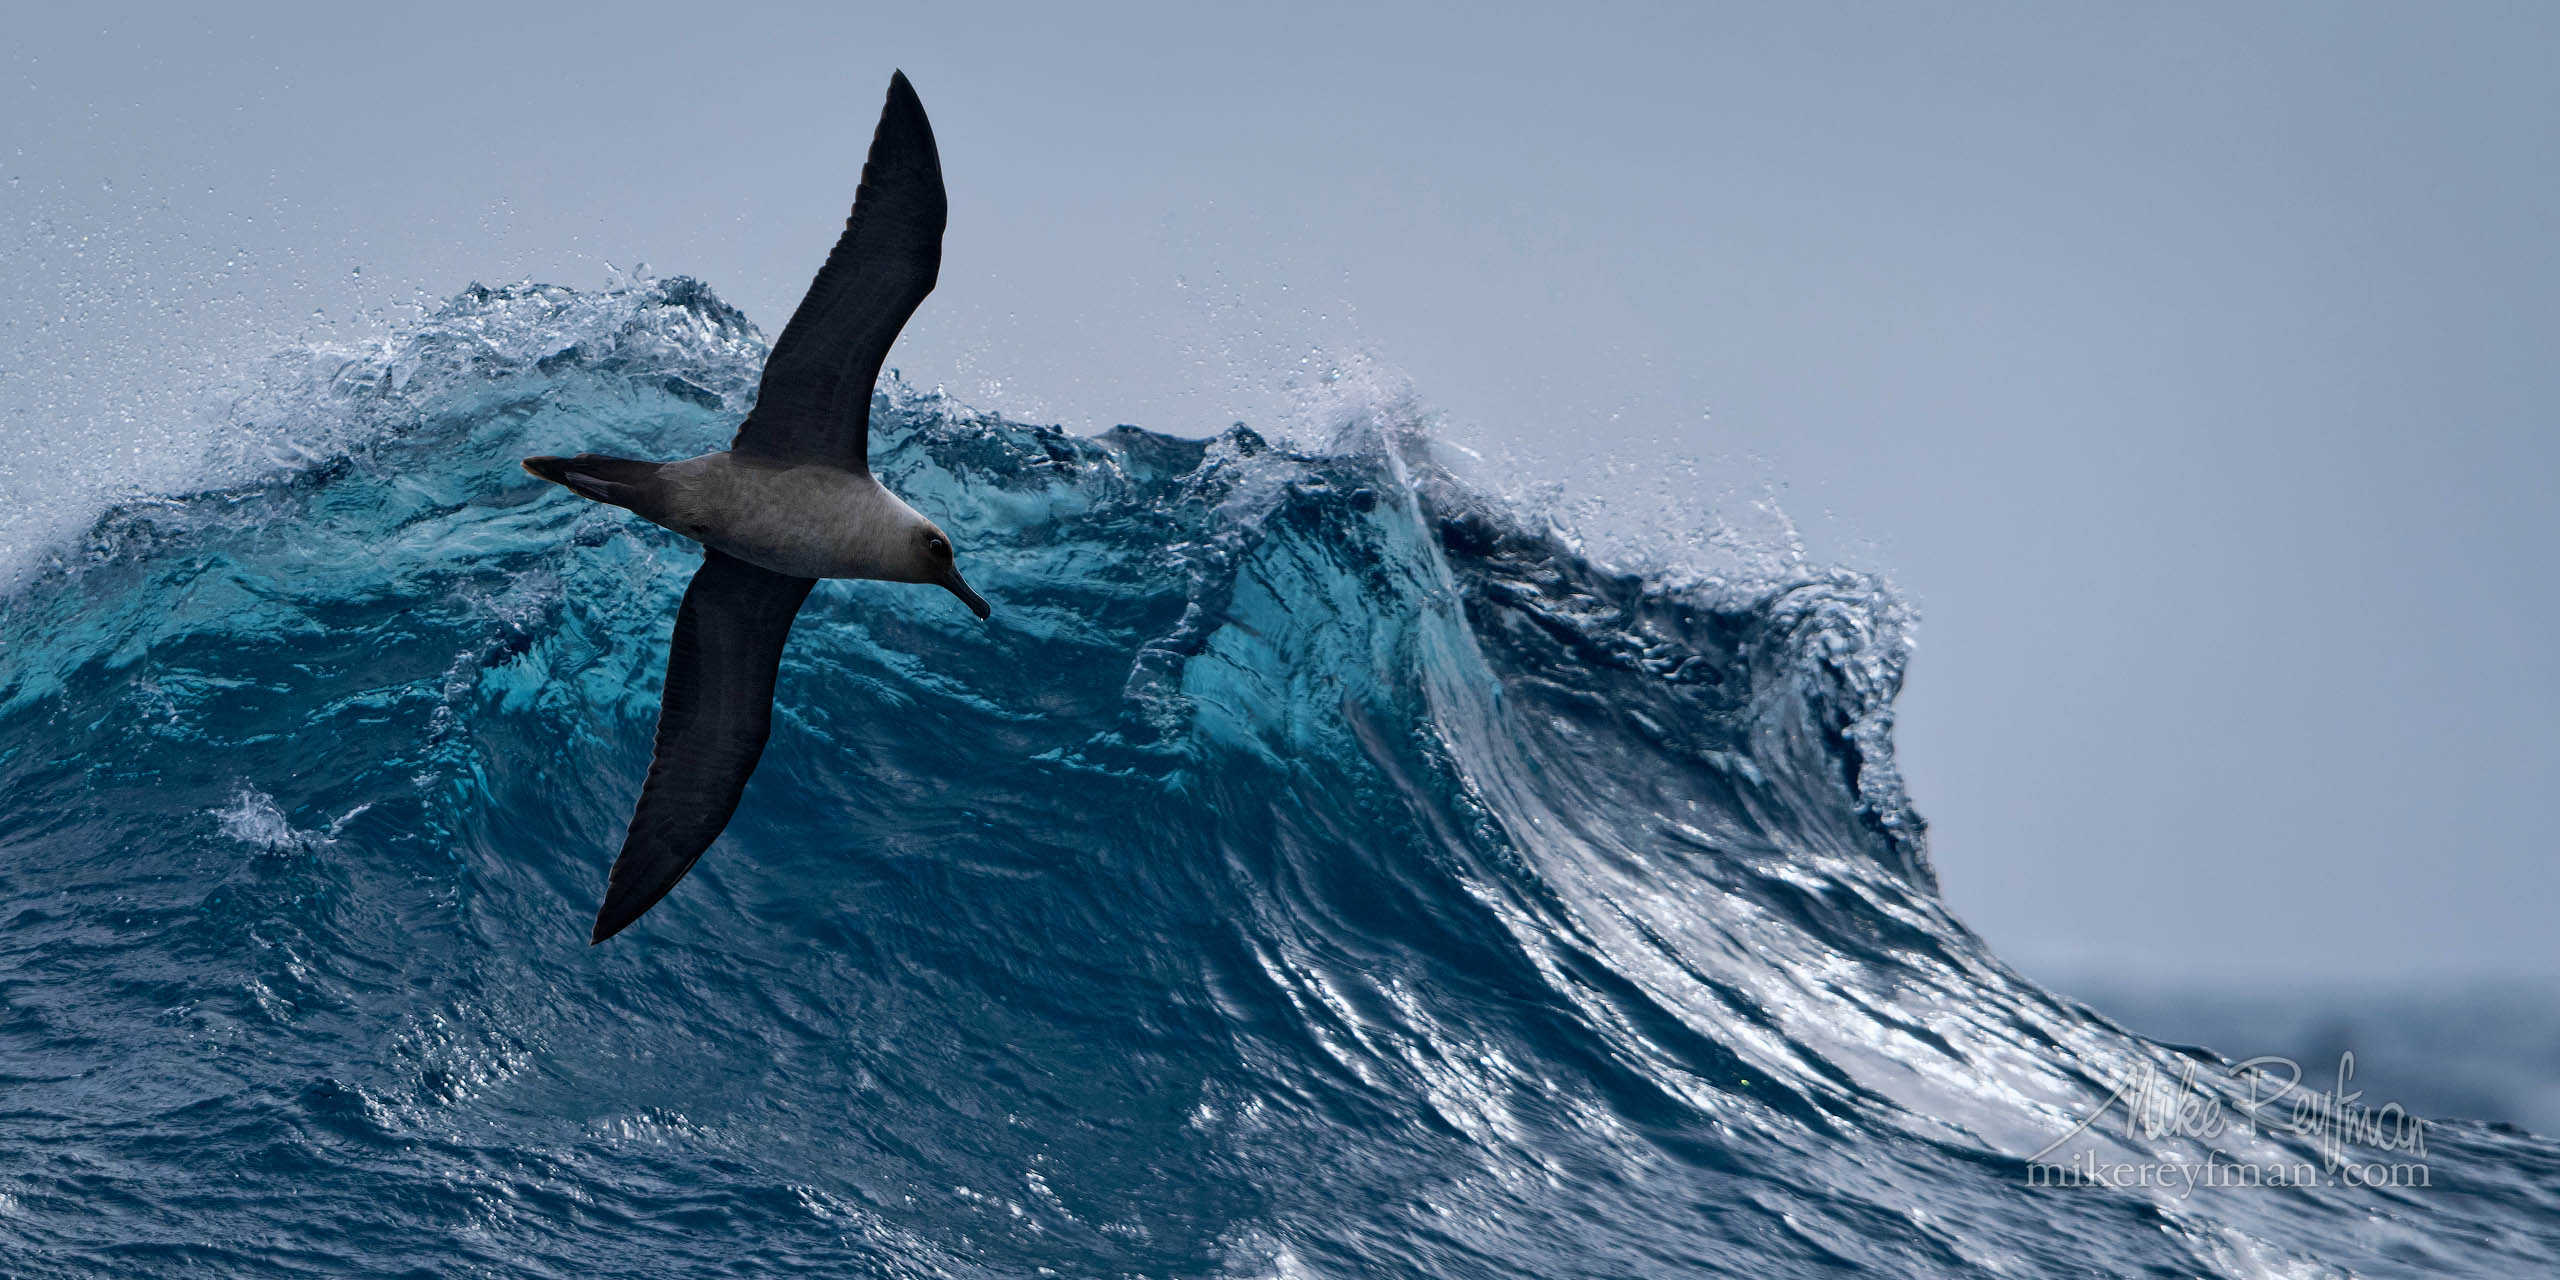 Drake Passage Aerobatics. Light-mantled Sooty Albatrosse (Phoebetria palpebrata) riding waves in Drake Passage. P12-MRD1A0707 - Selected panoramic images with 2:1 aspect ratio - Mike Reyfman Photography